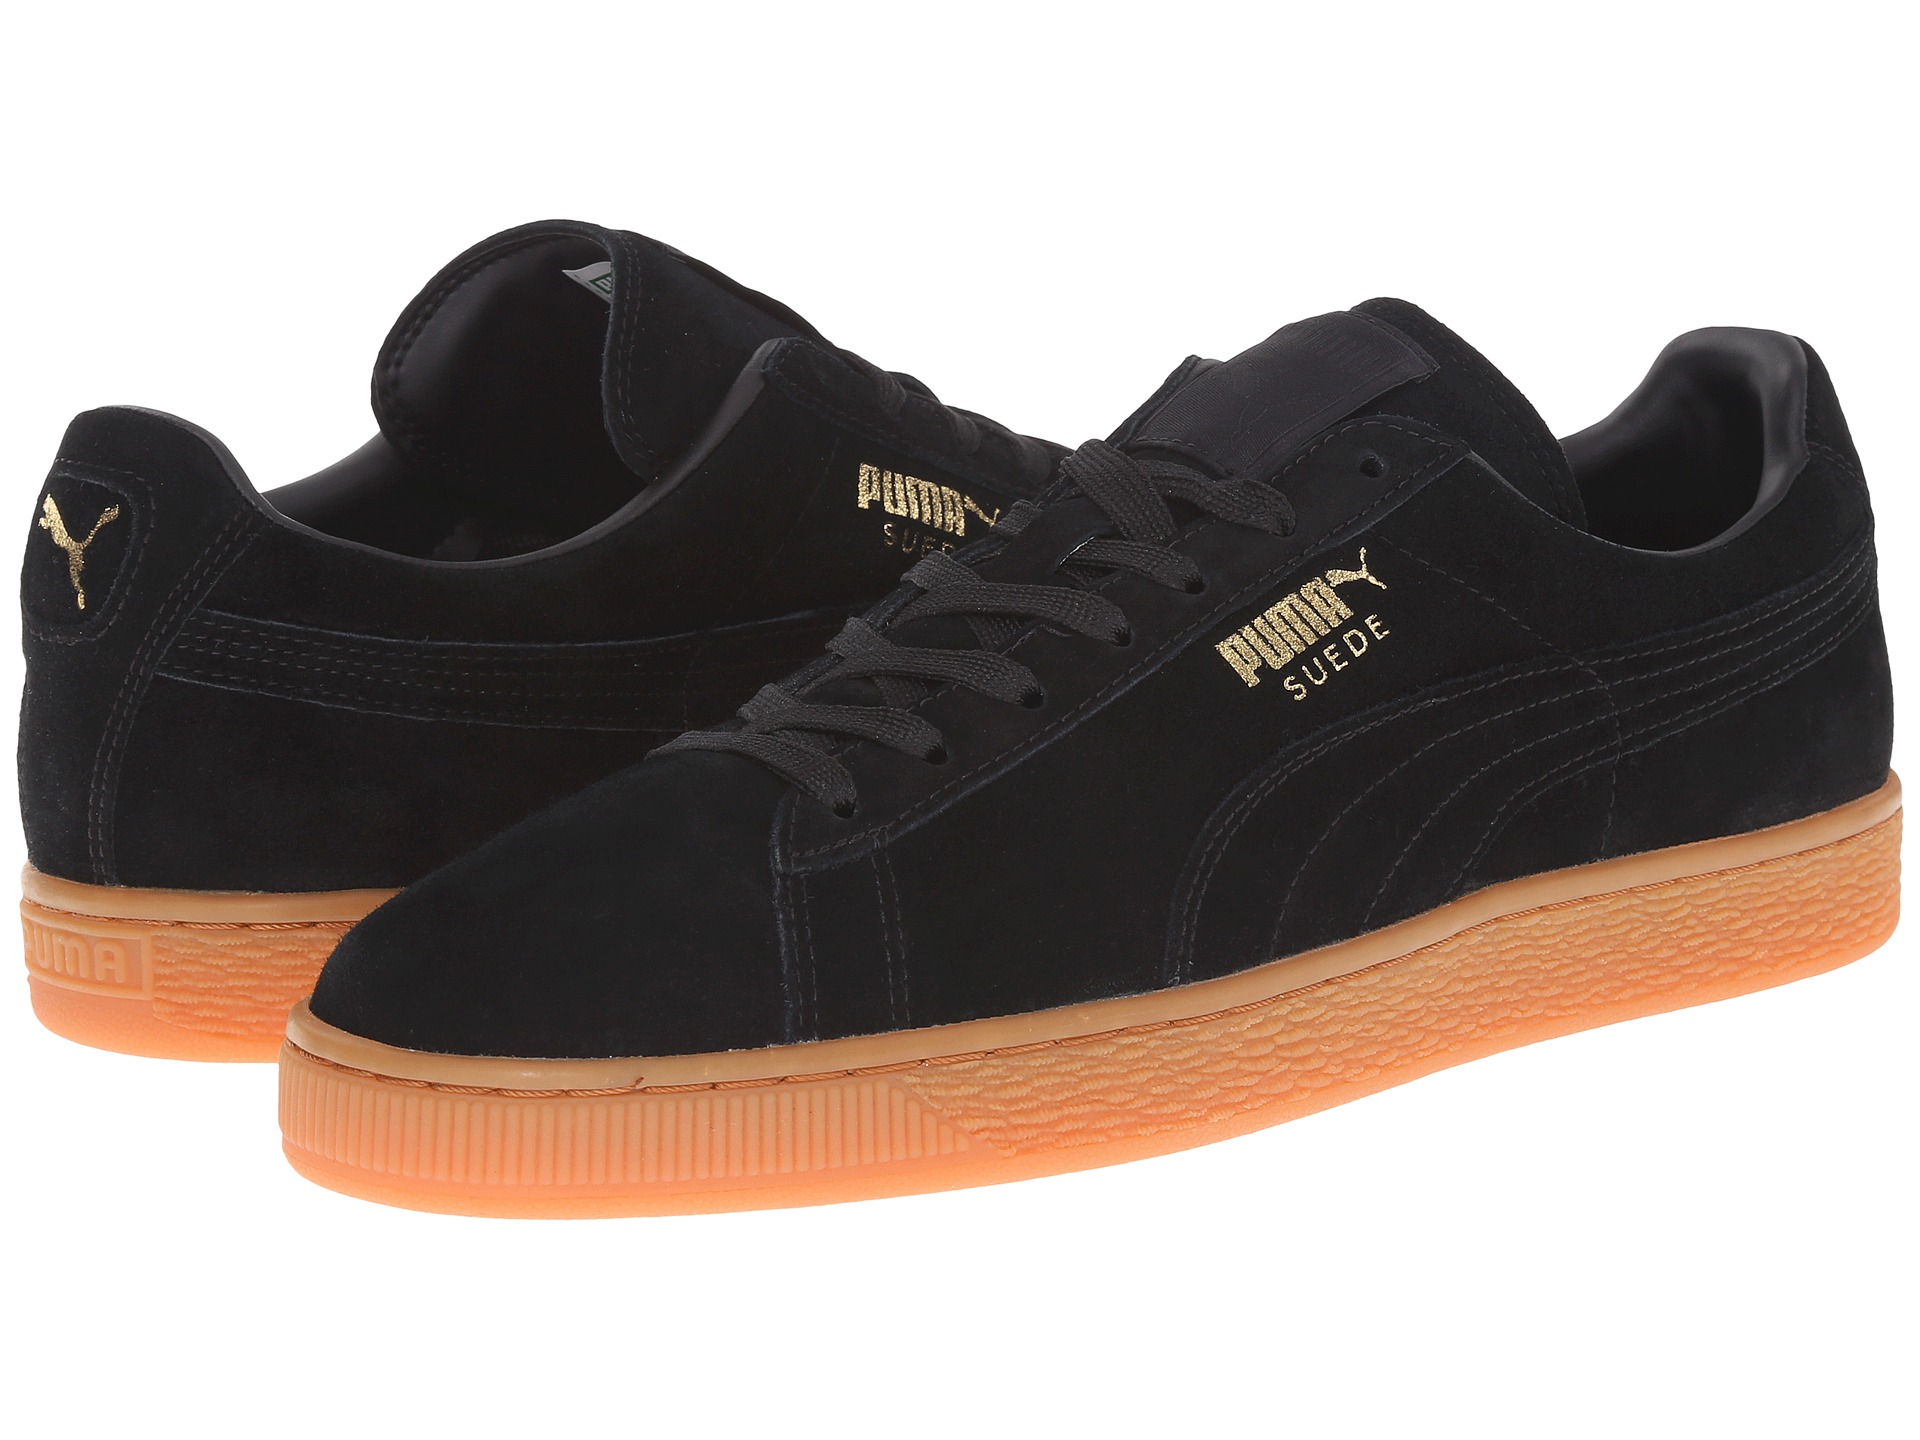 9d2be8154 puma suede classic black trainers cheap > OFF42% Discounted